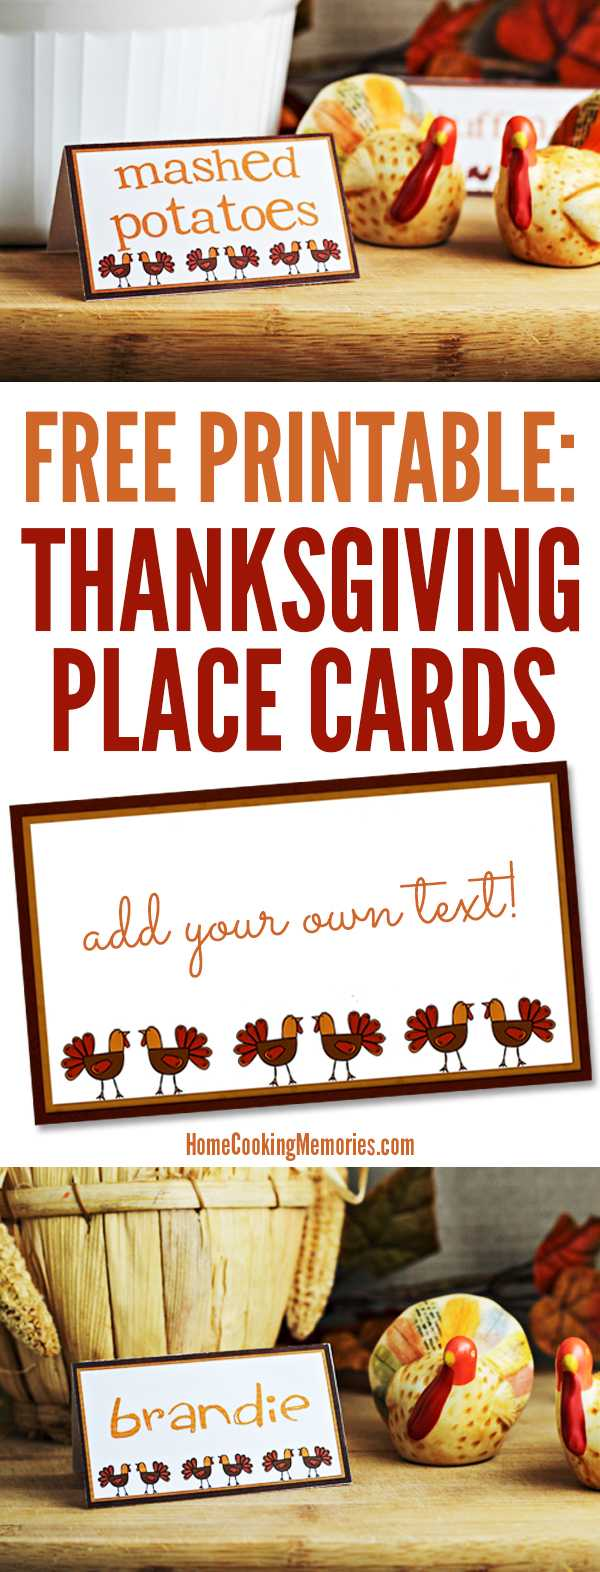 Free Printables: Thanksgiving Place Cards - Home Cooking Throughout Thanksgiving Place Cards Template